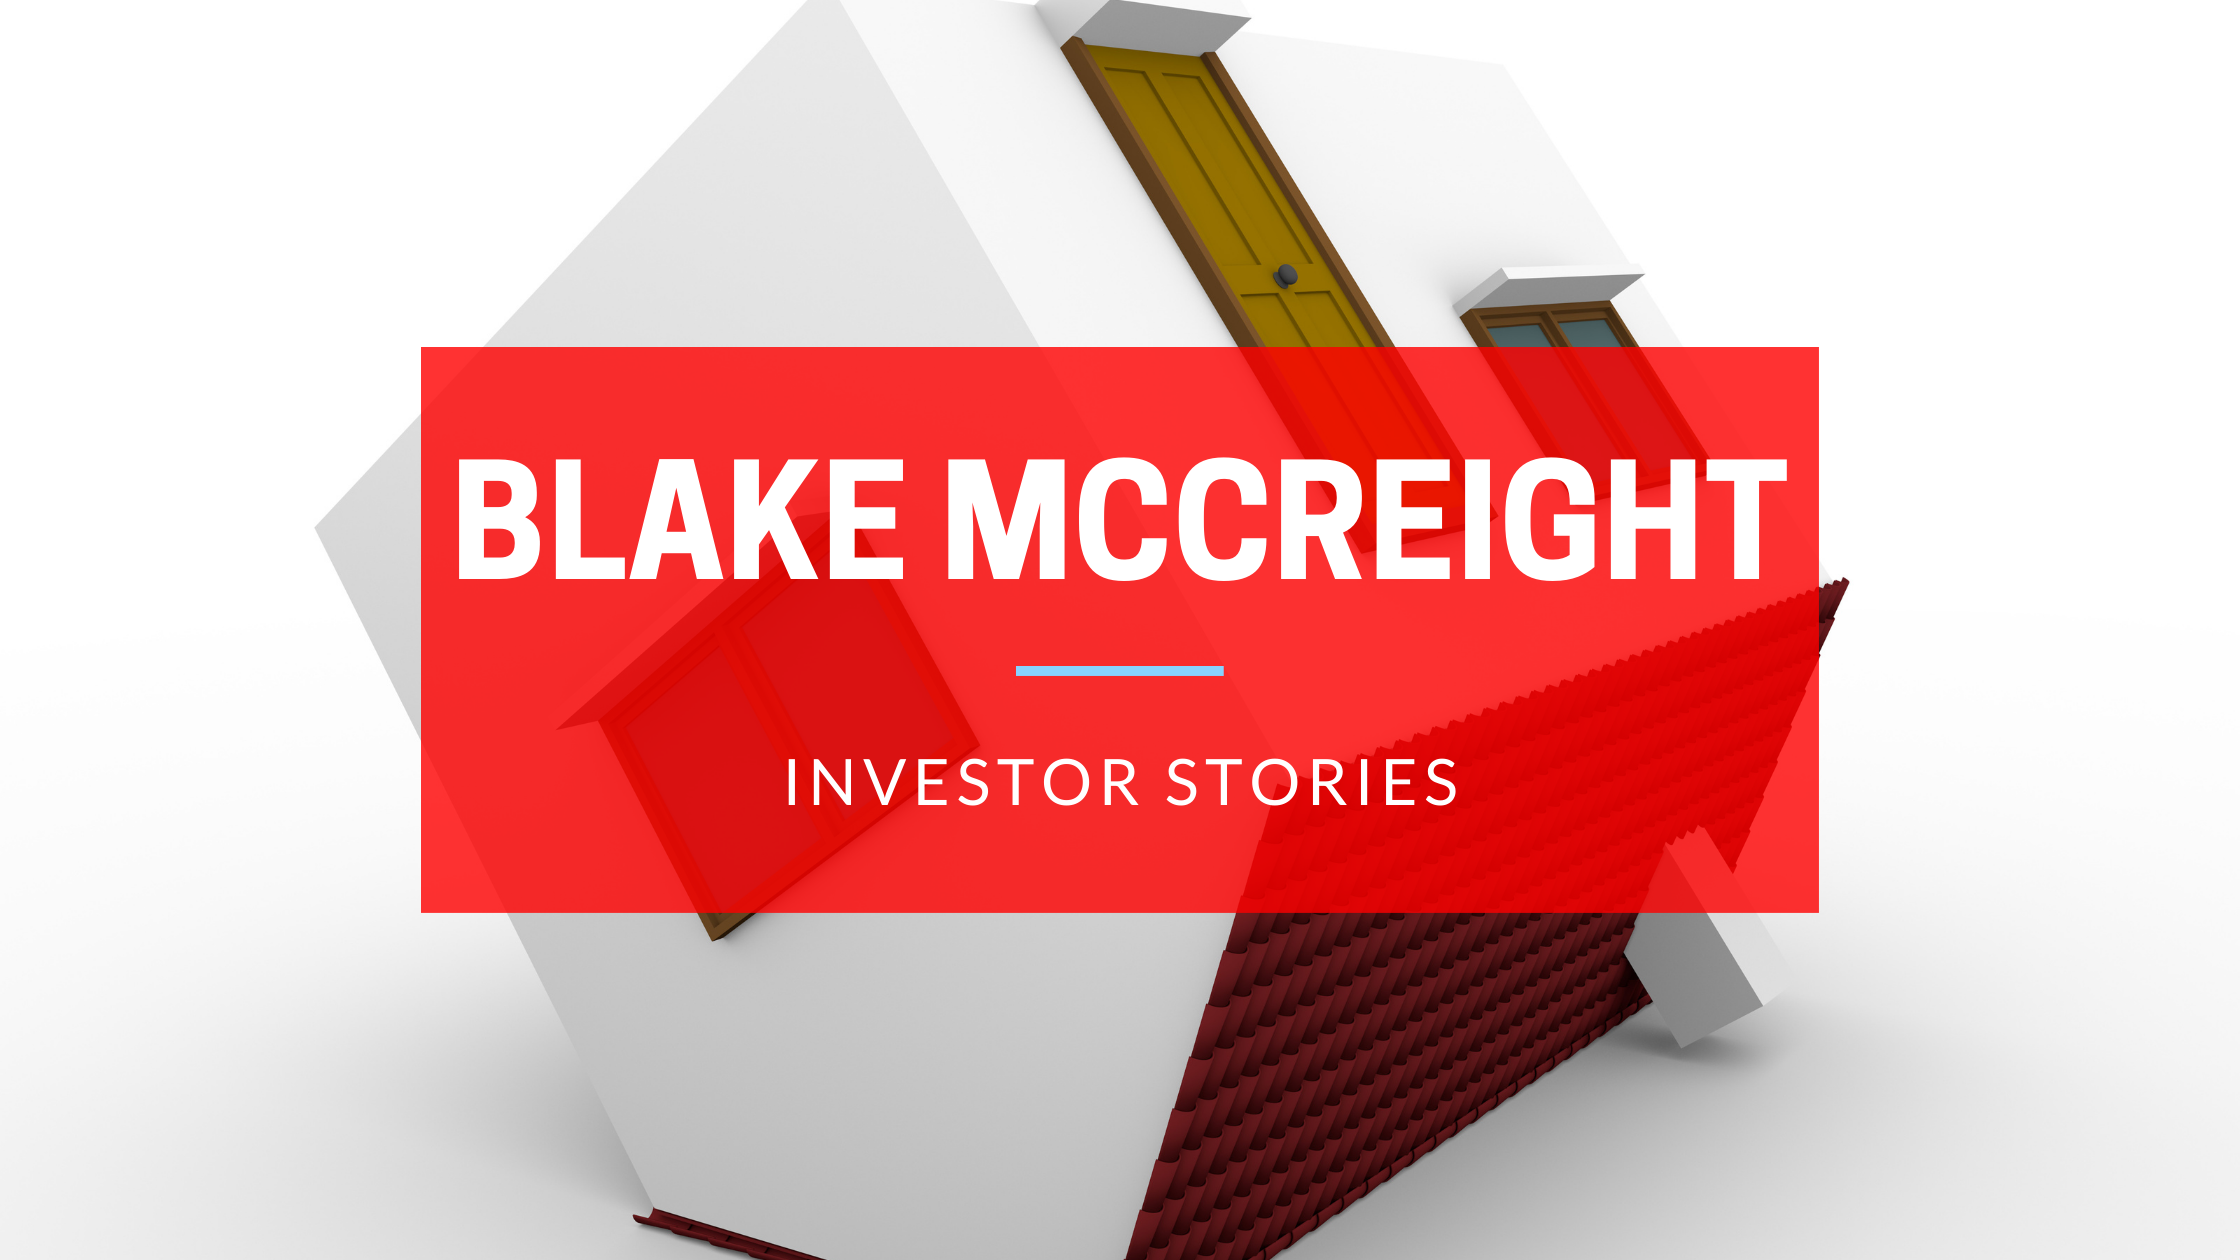 INVESTOR STORIES FEATURING BLAKE MCCREIGHT